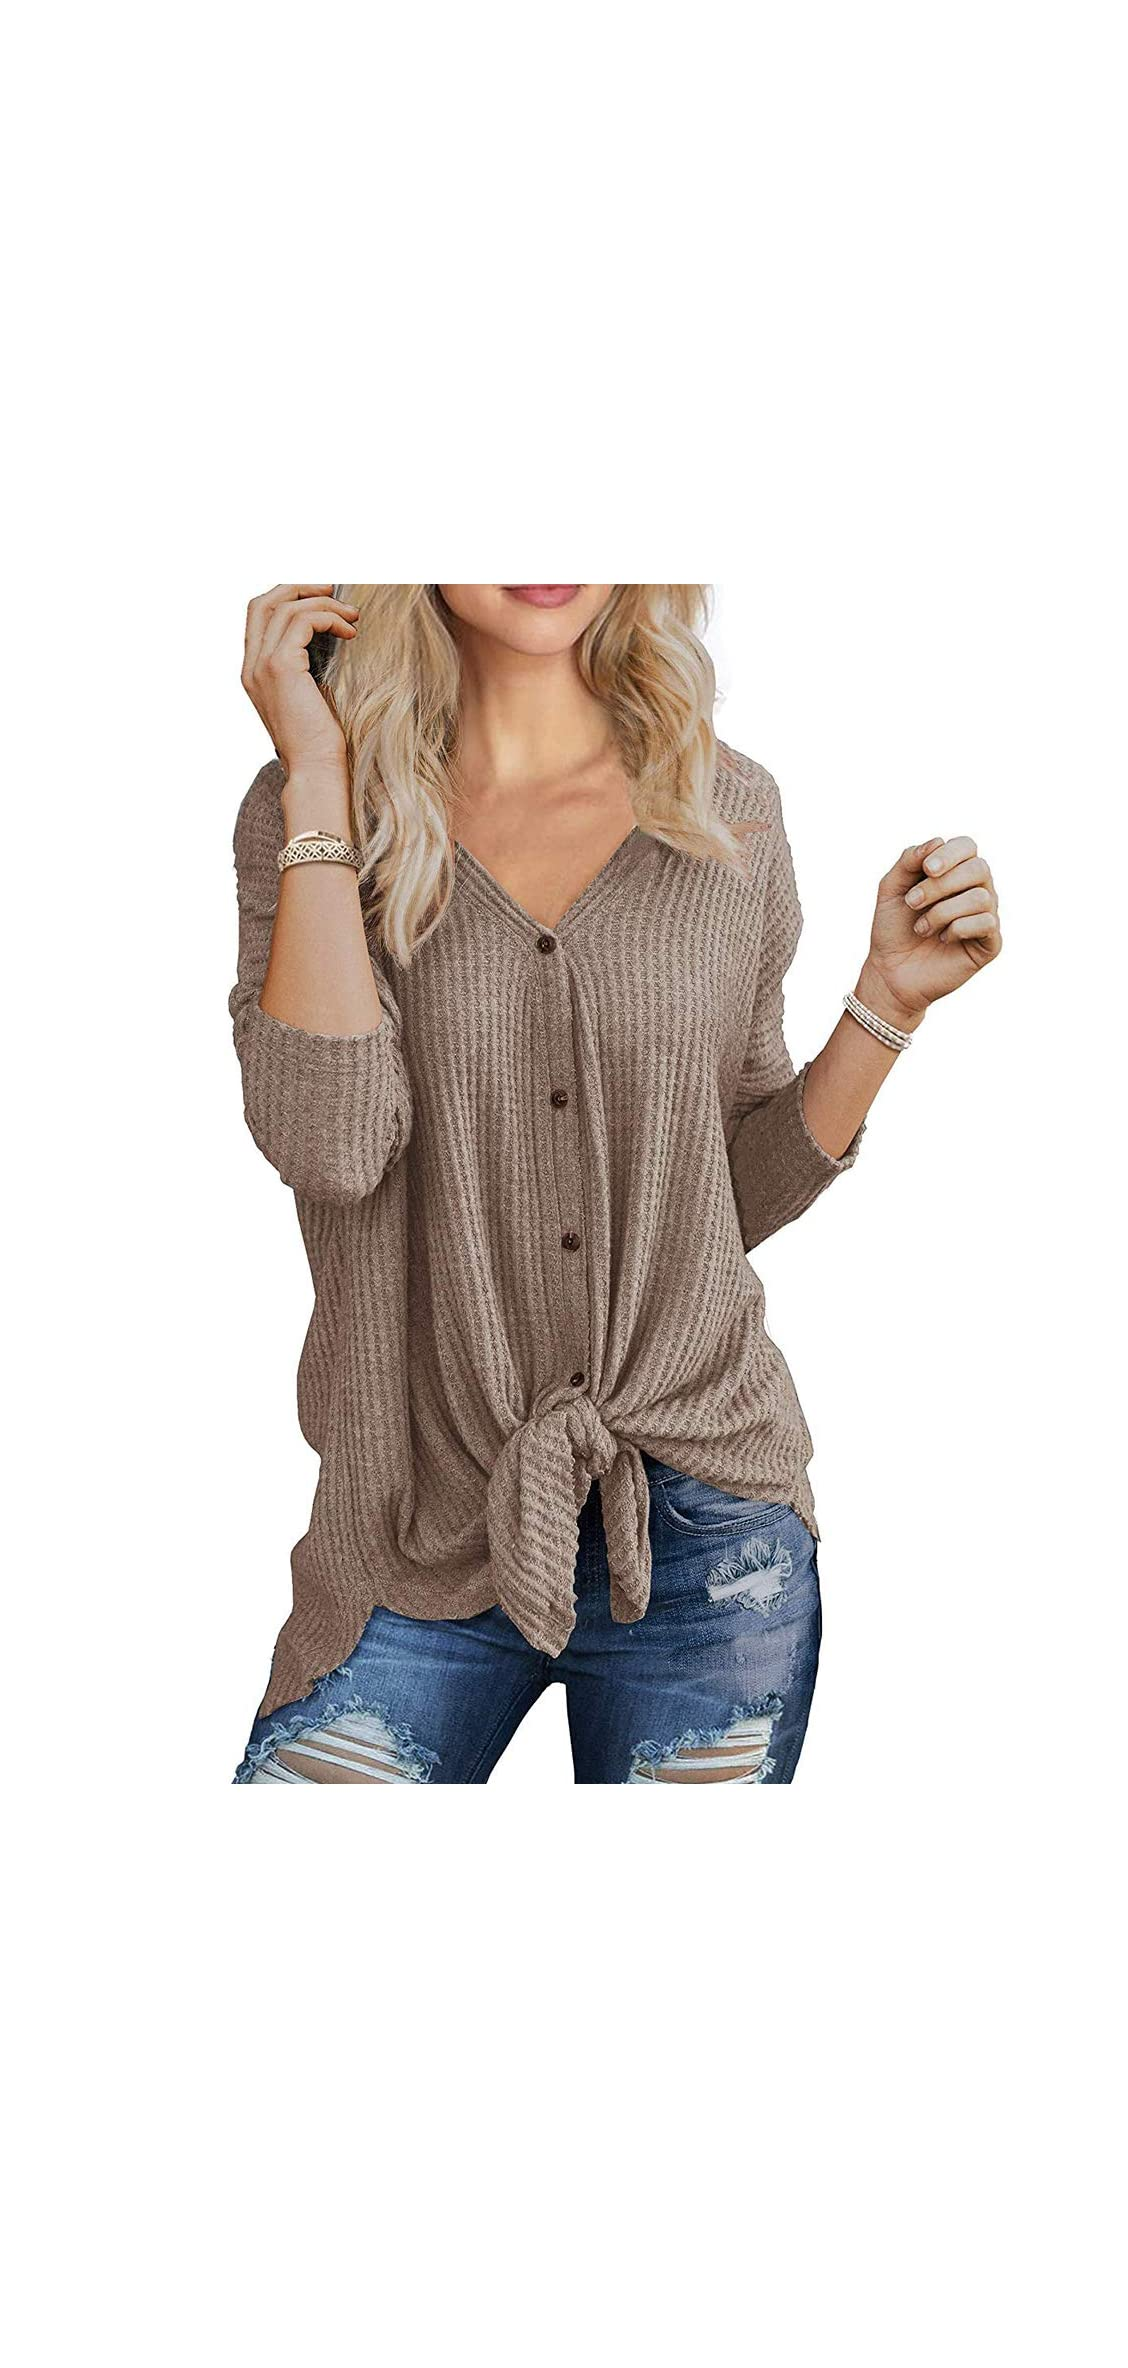 Womens Waffle Knit Tunic Blouse Tie Knot Henley Tops Bat